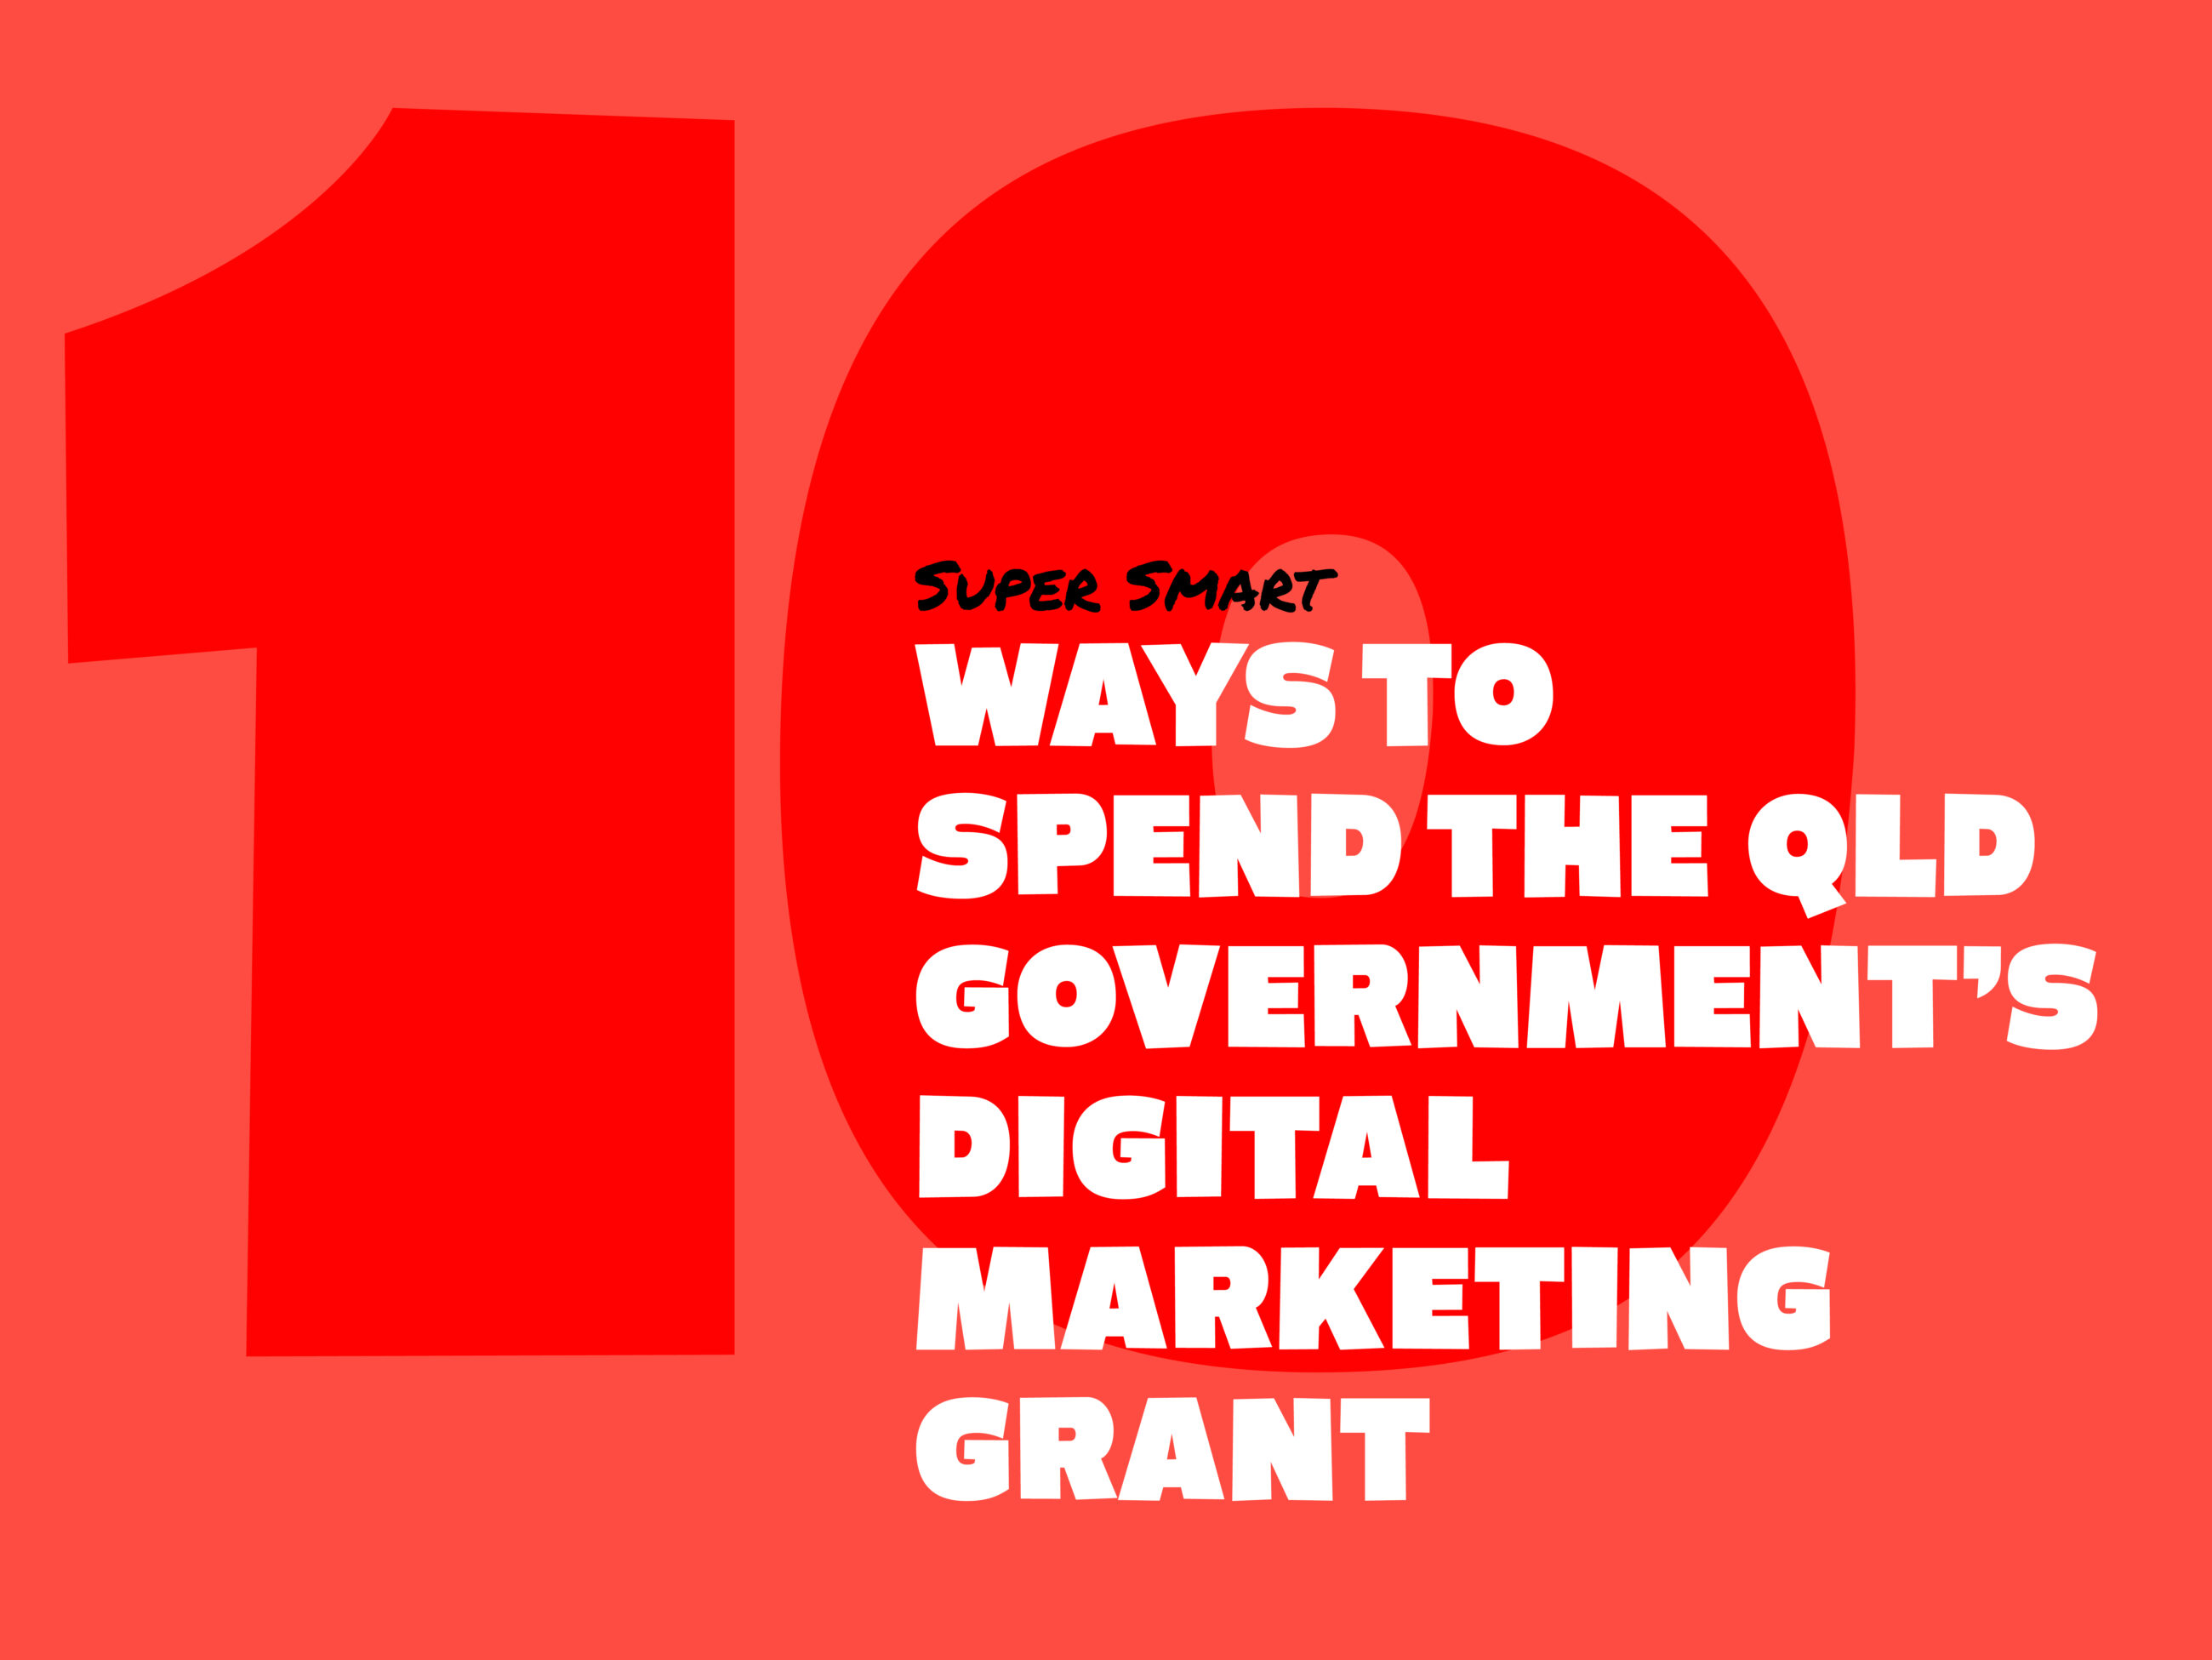 10 Ways to Spend the QLD Government's Digital Marketing Grant